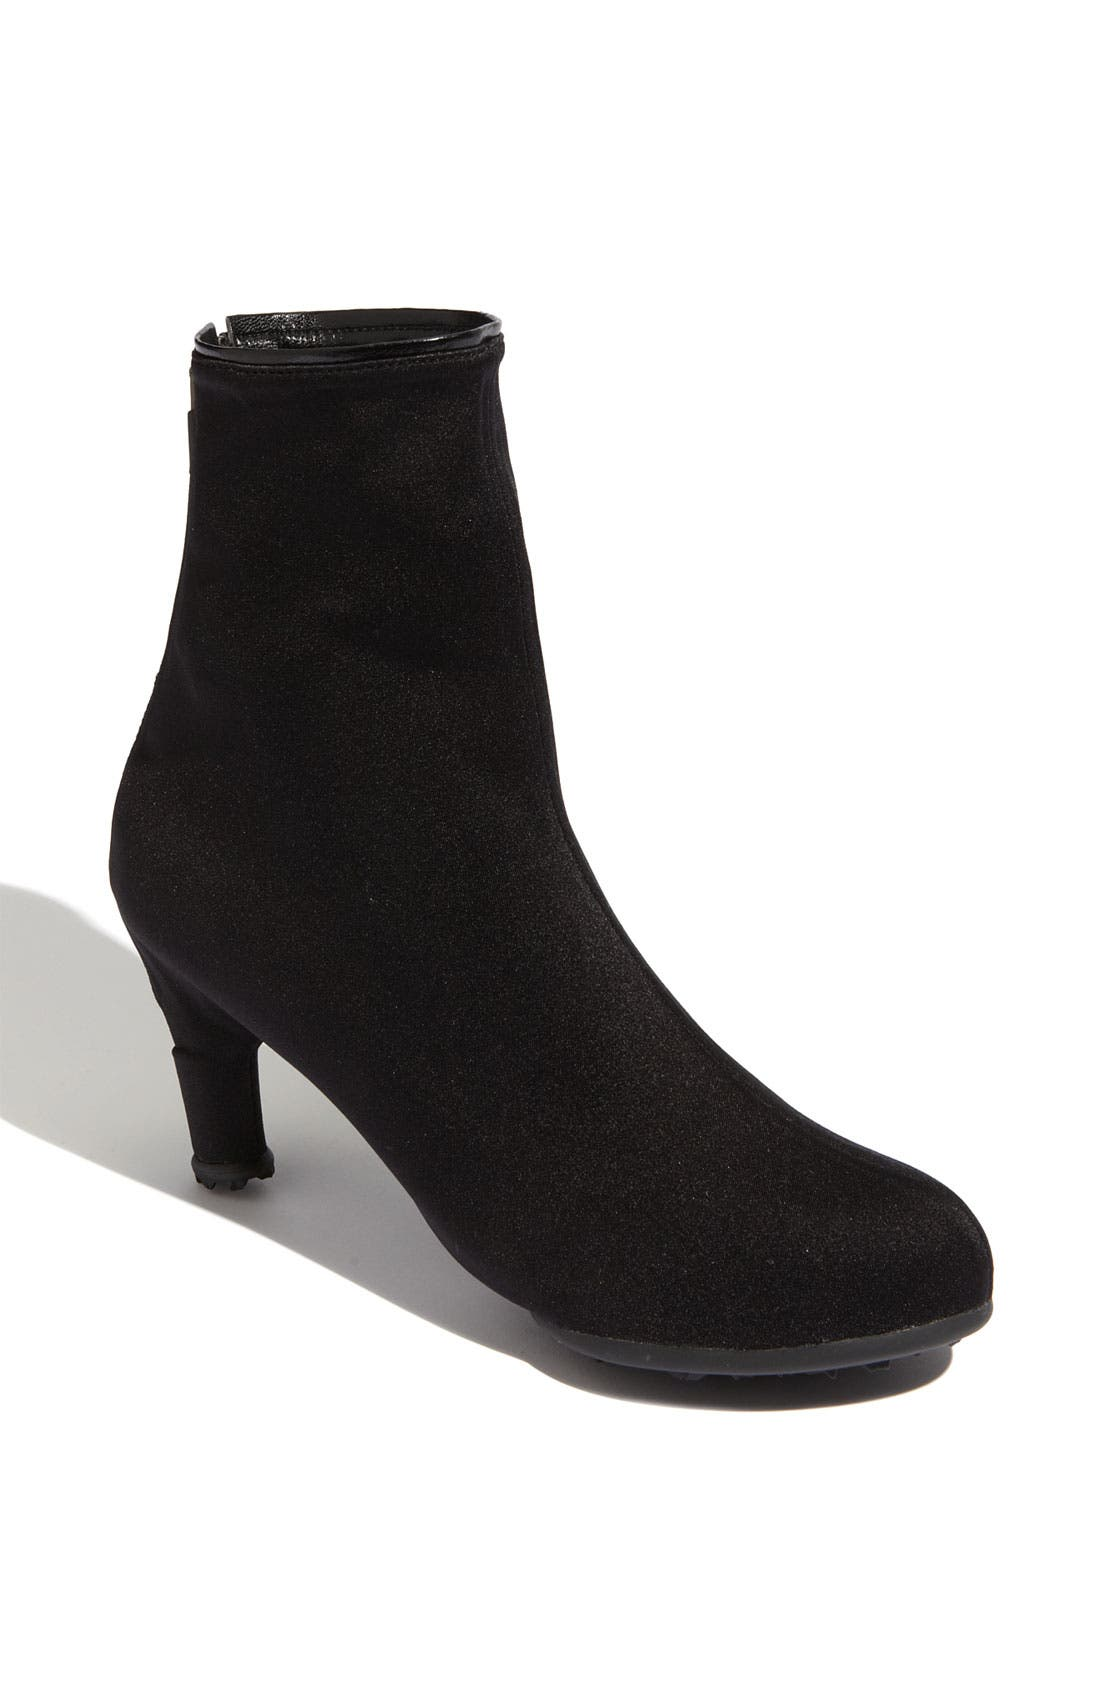 Main Image - Grace Carter 'High Round' Shoe Cover